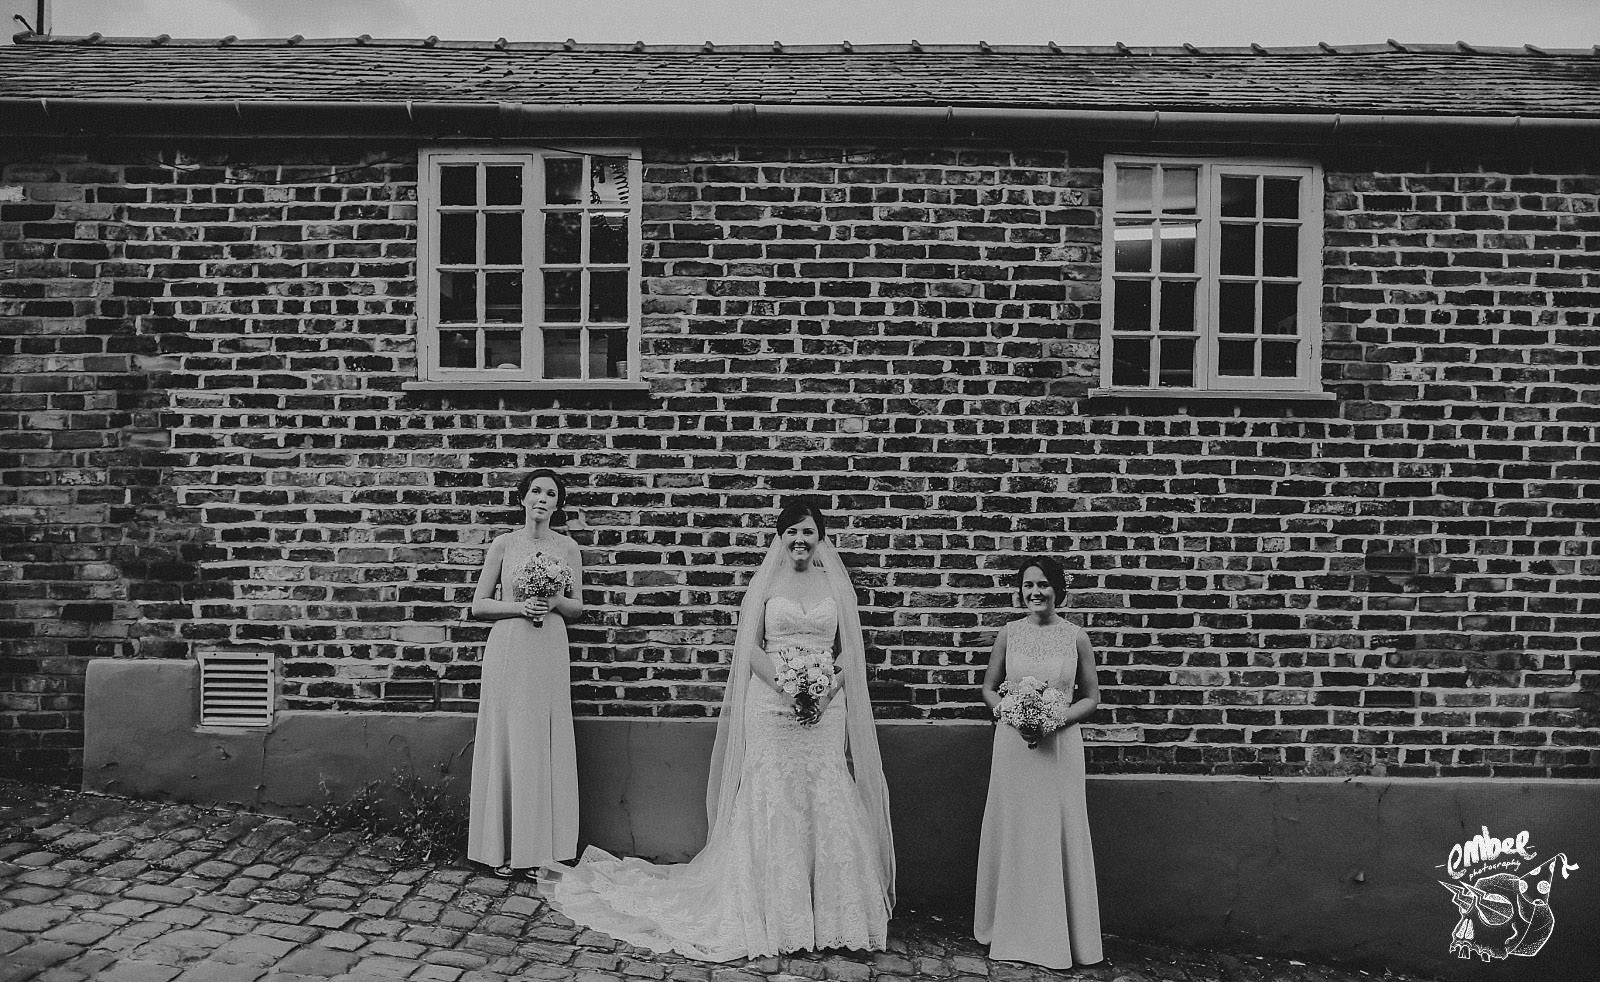 bride and bridesmaids against a windowed building